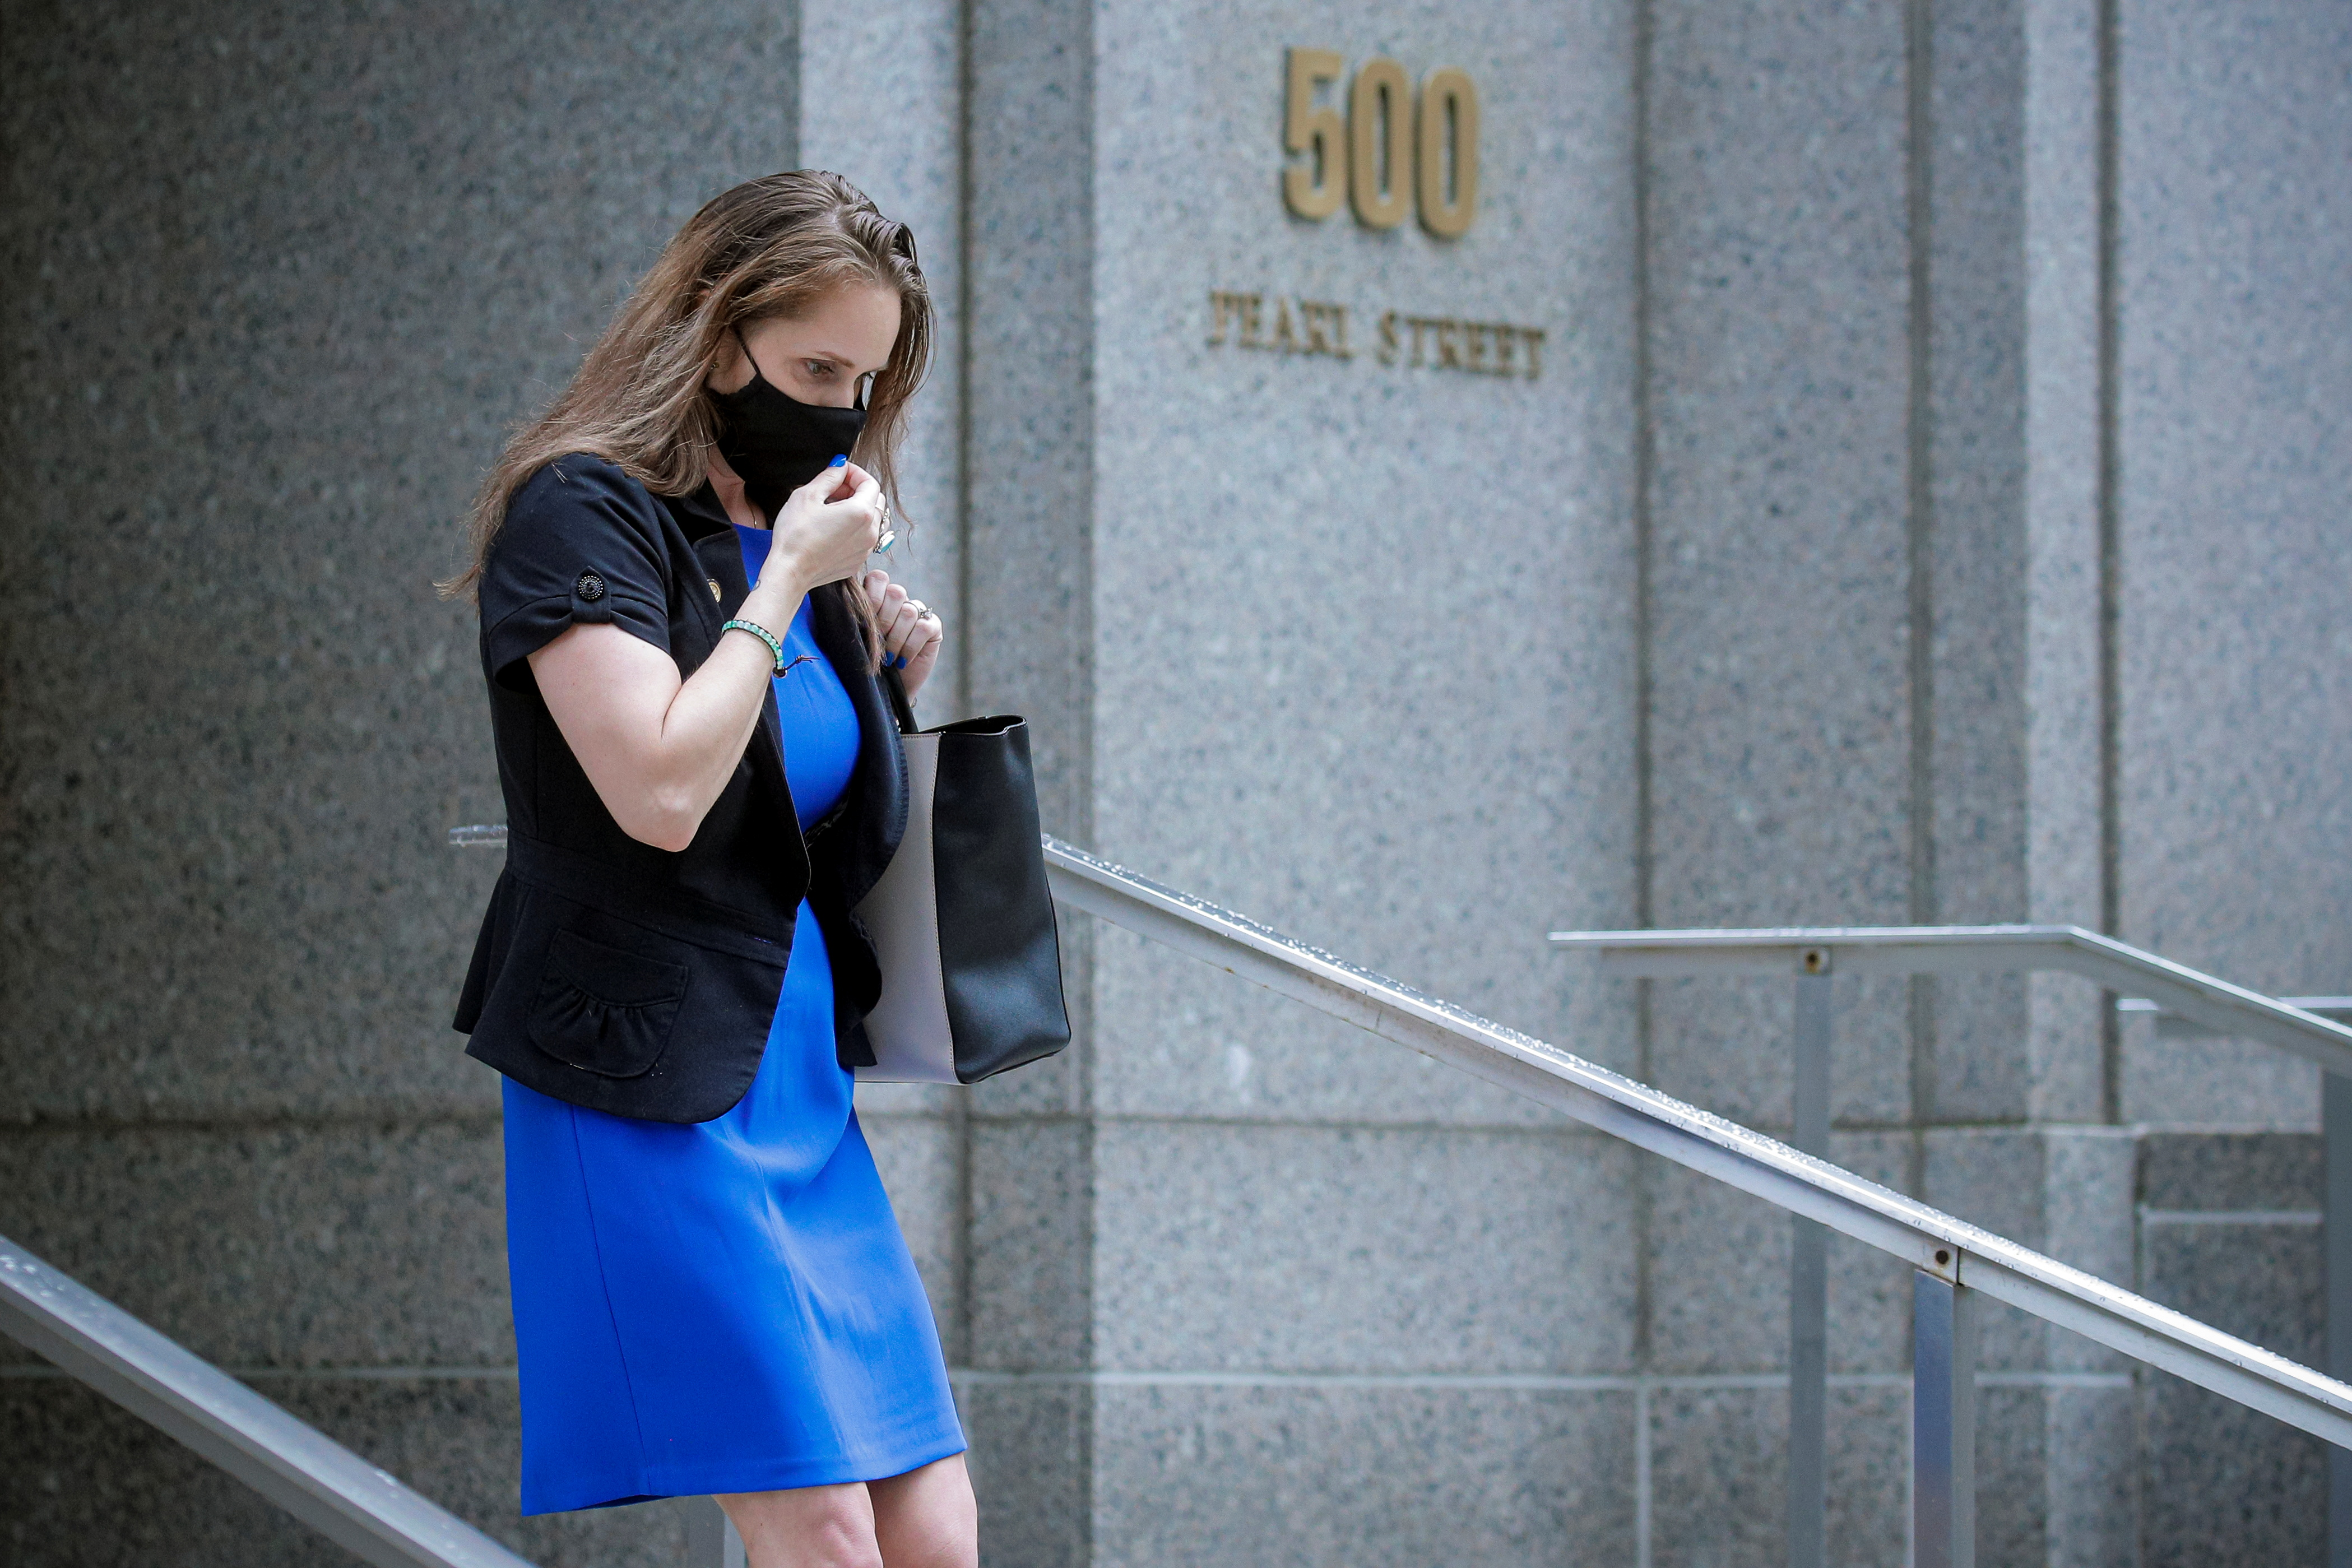 Natalie Mayflower Sours Edwards, a former senior adviser in Treasury's Financial Crimes Enforcement Network (FinCEN), exits the Manhattan Federal Courthouse, following her sentencing hearing in the Manhattan borough of New York, U.S., June 3, 2021.  REUTERS/Brendan McDermid